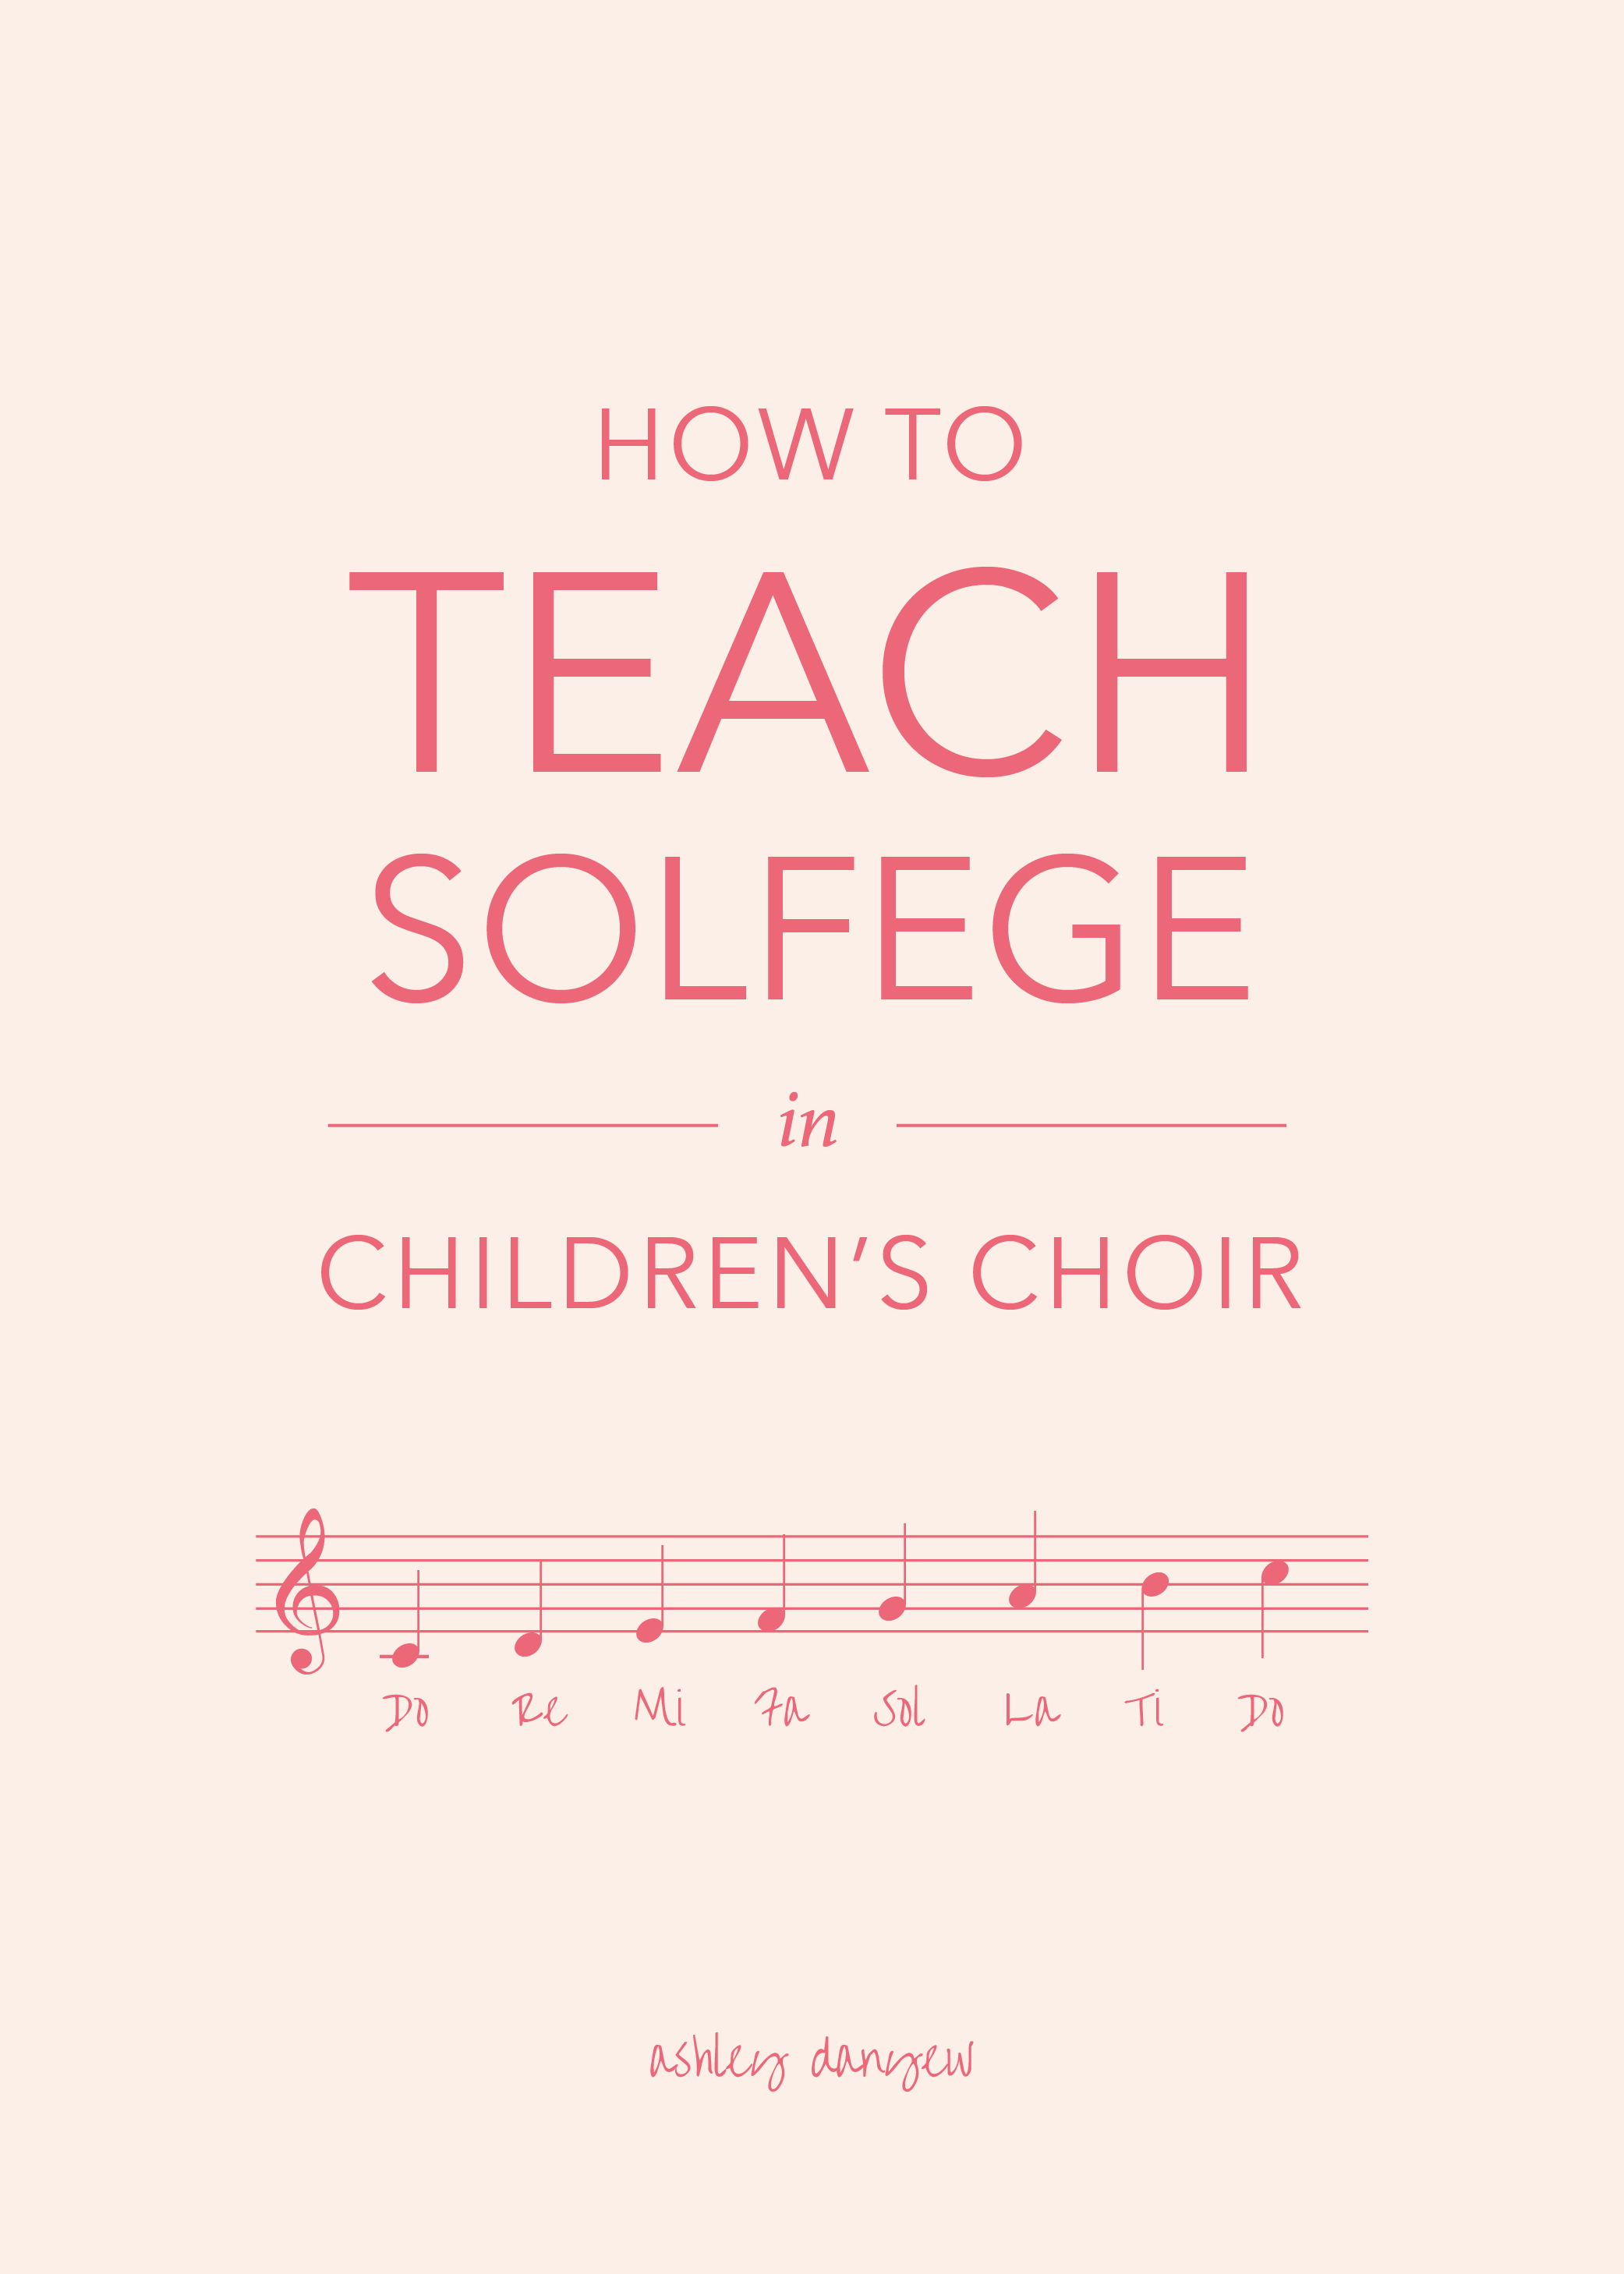 Copy of How to Teach Solfege in Children's Choir